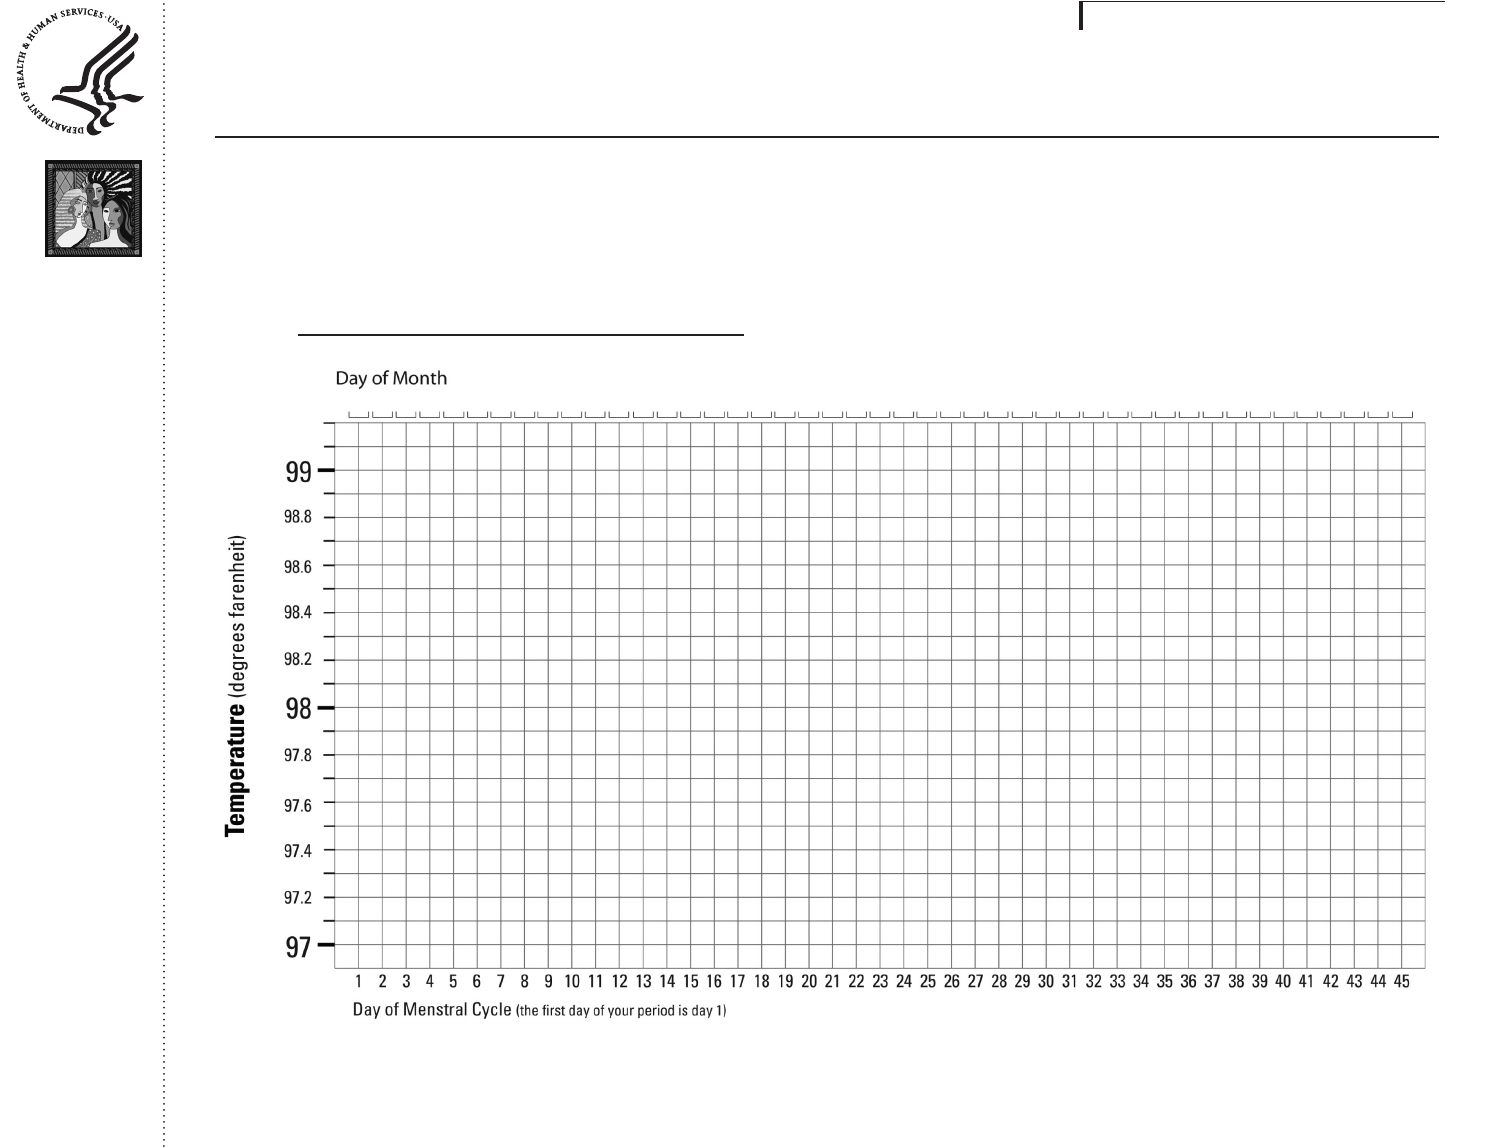 picture relating to Basal Body Temp Chart Printable called Free of charge Basal Overall body Weather Chart - PDF 568KB 1 Web site(s)